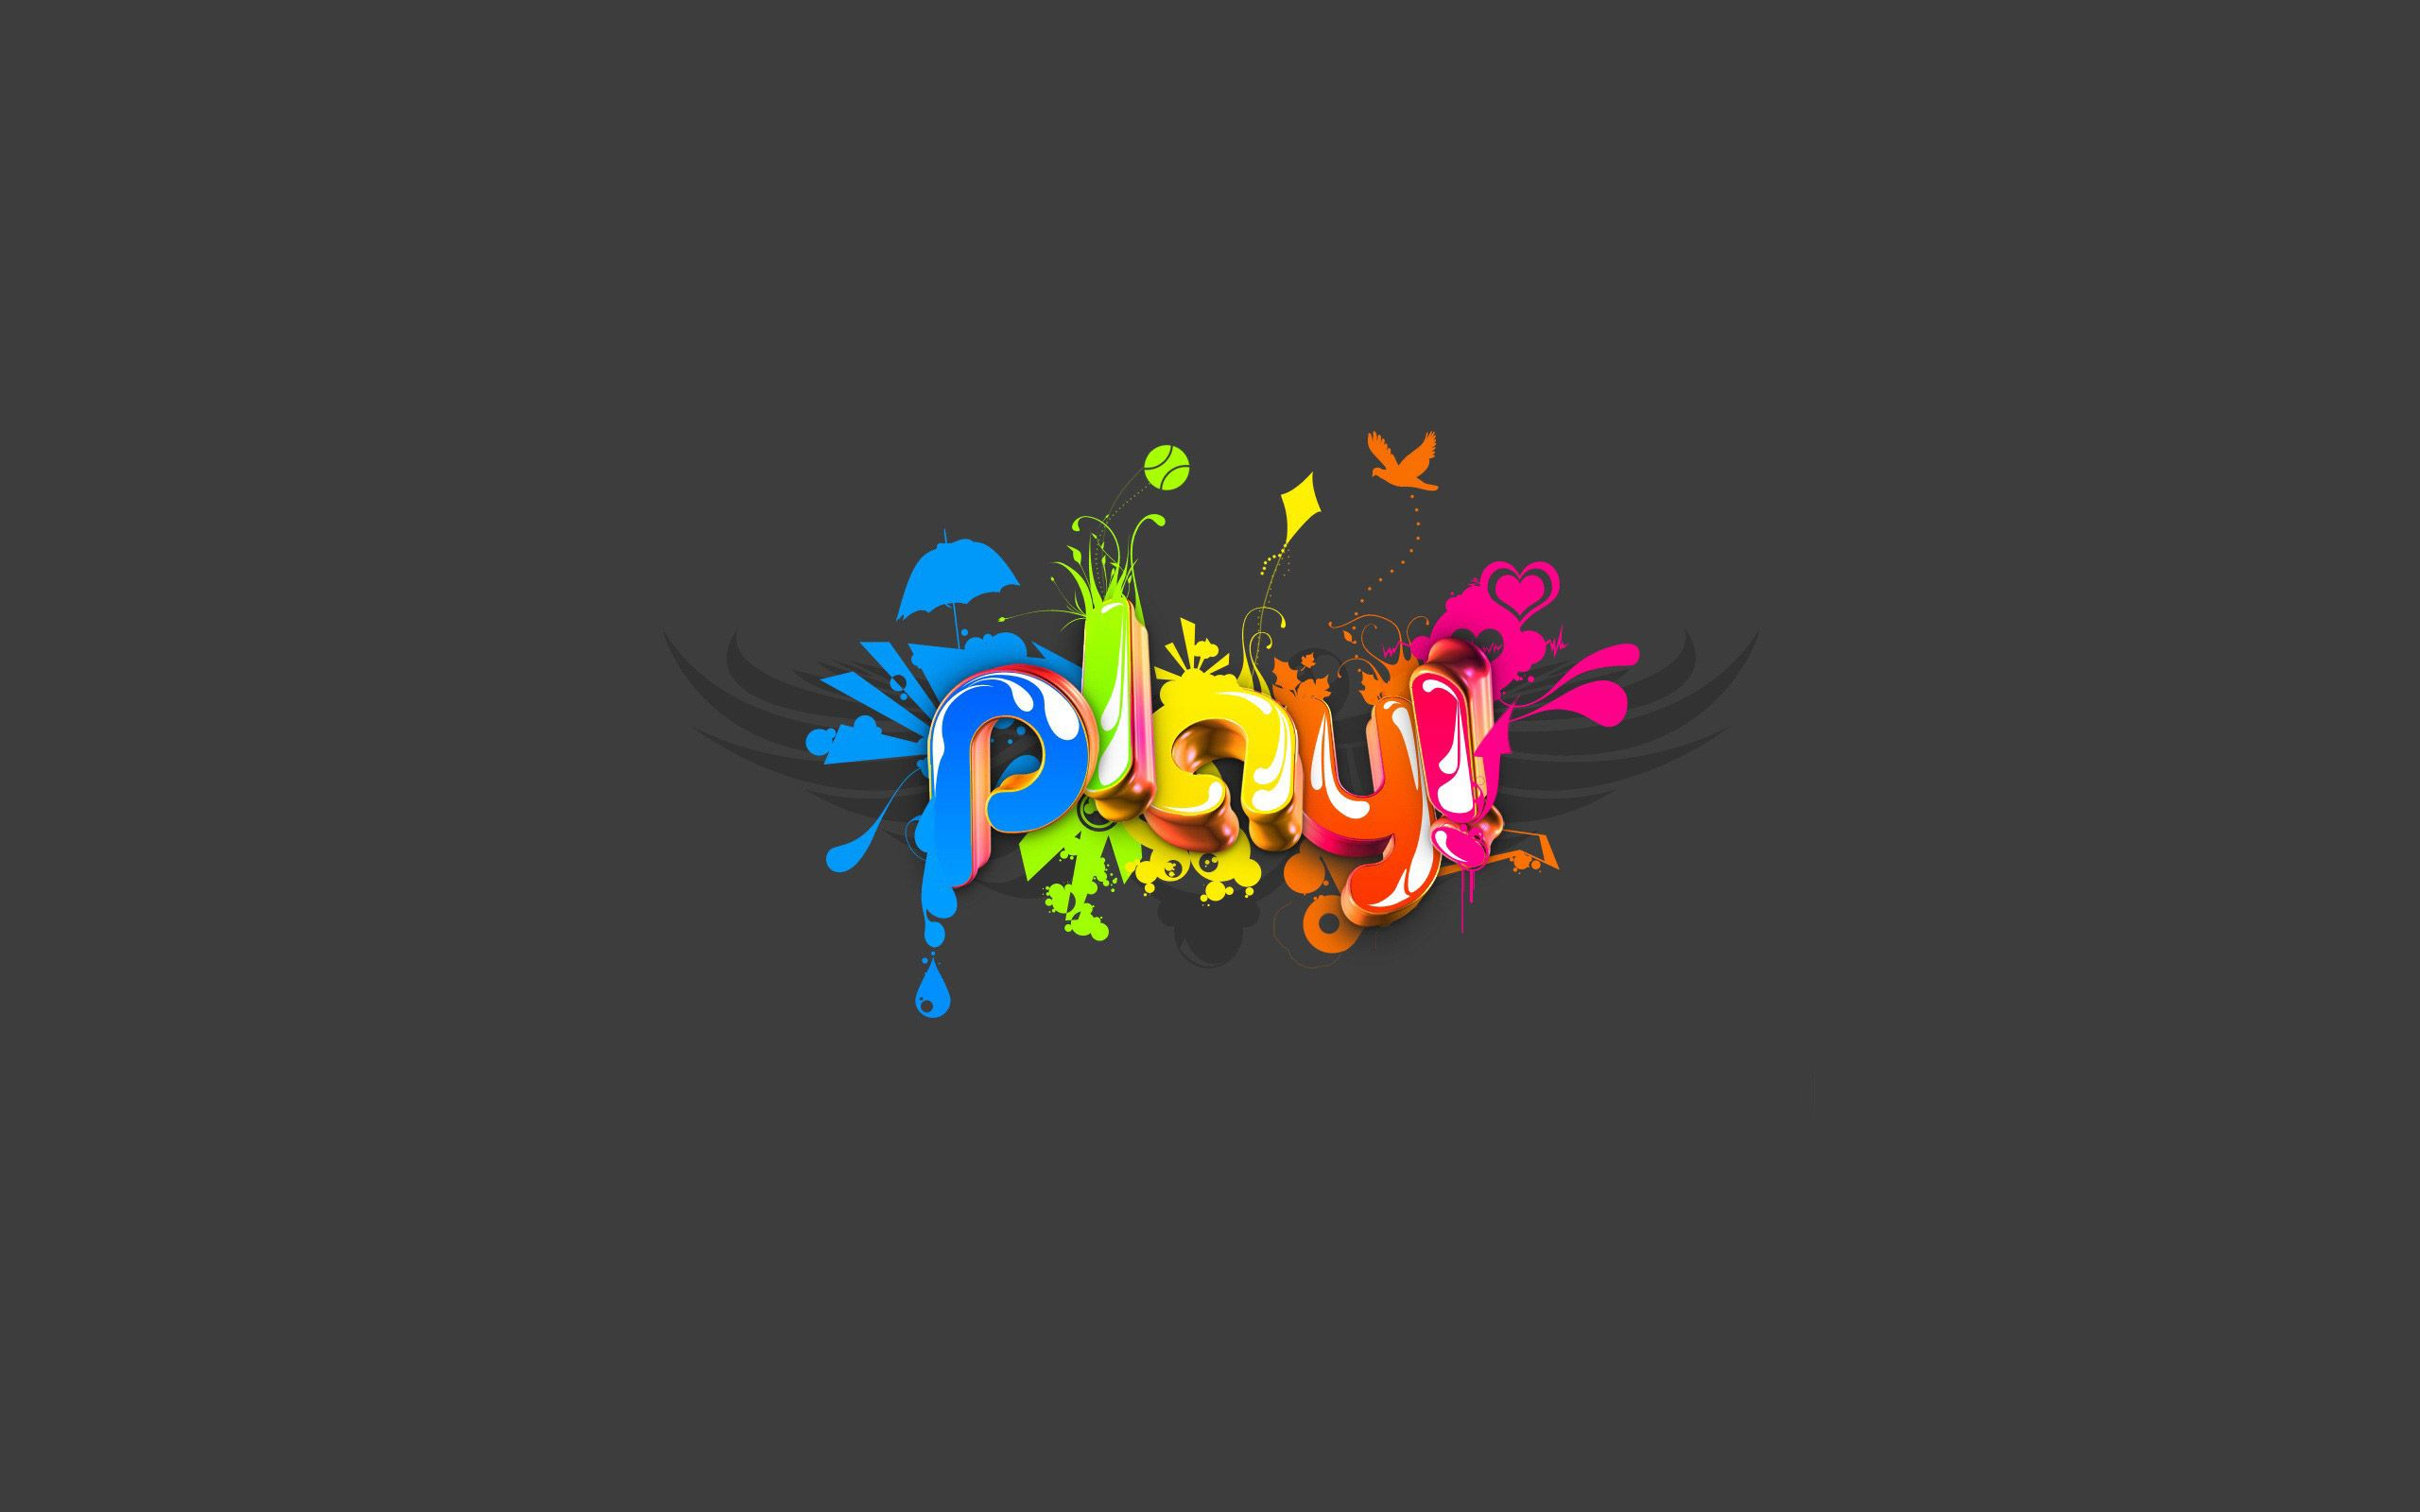 play typography google skins play typography google backgrounds